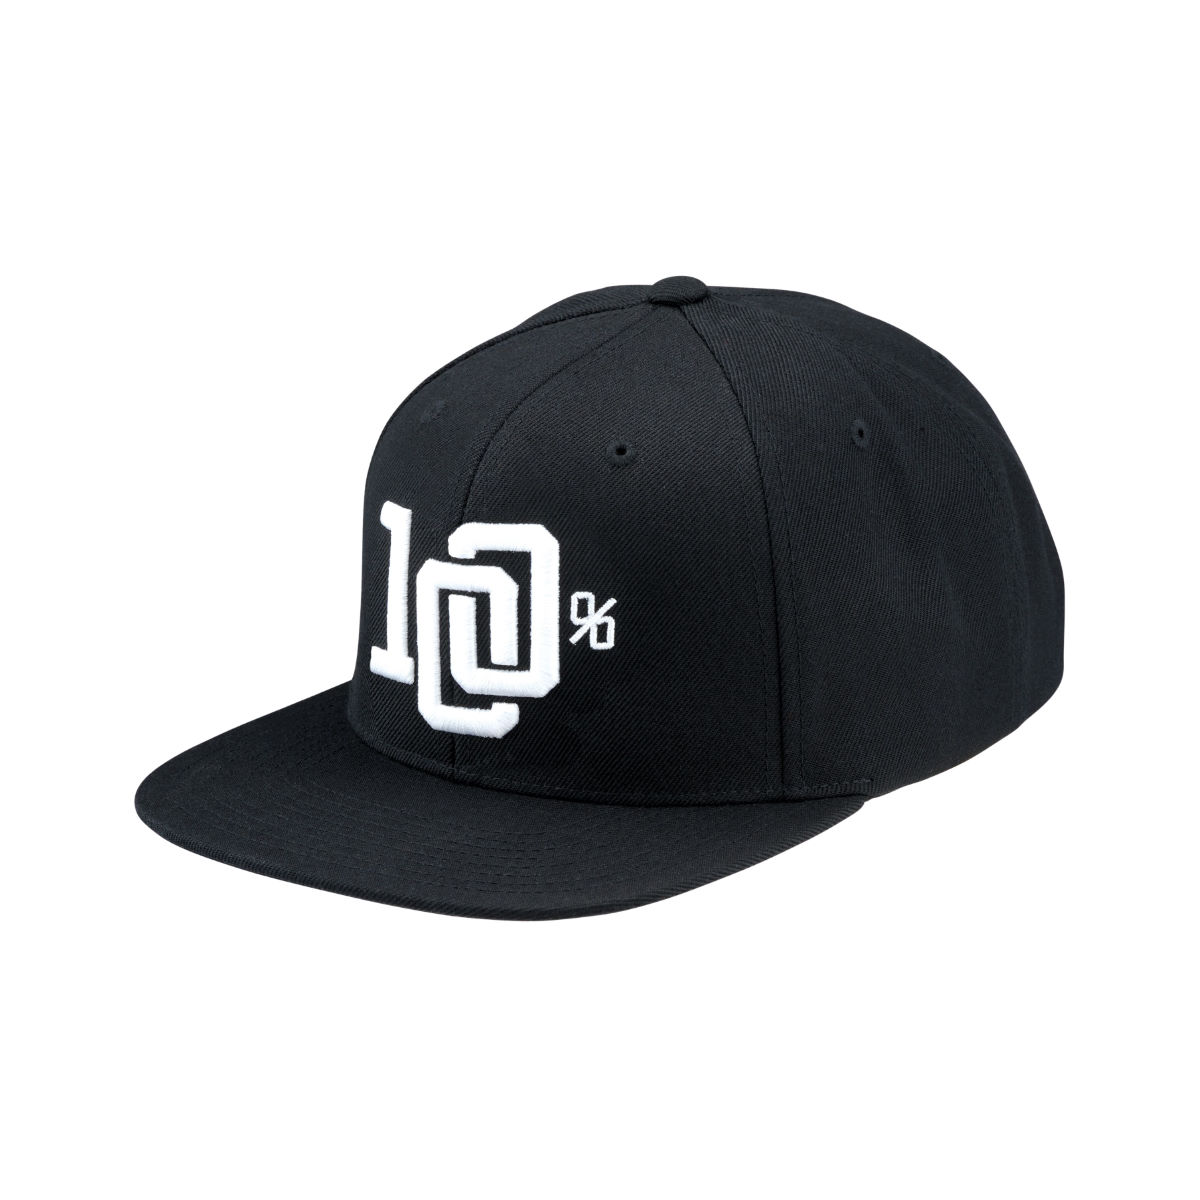 100% College Hat - Gorras